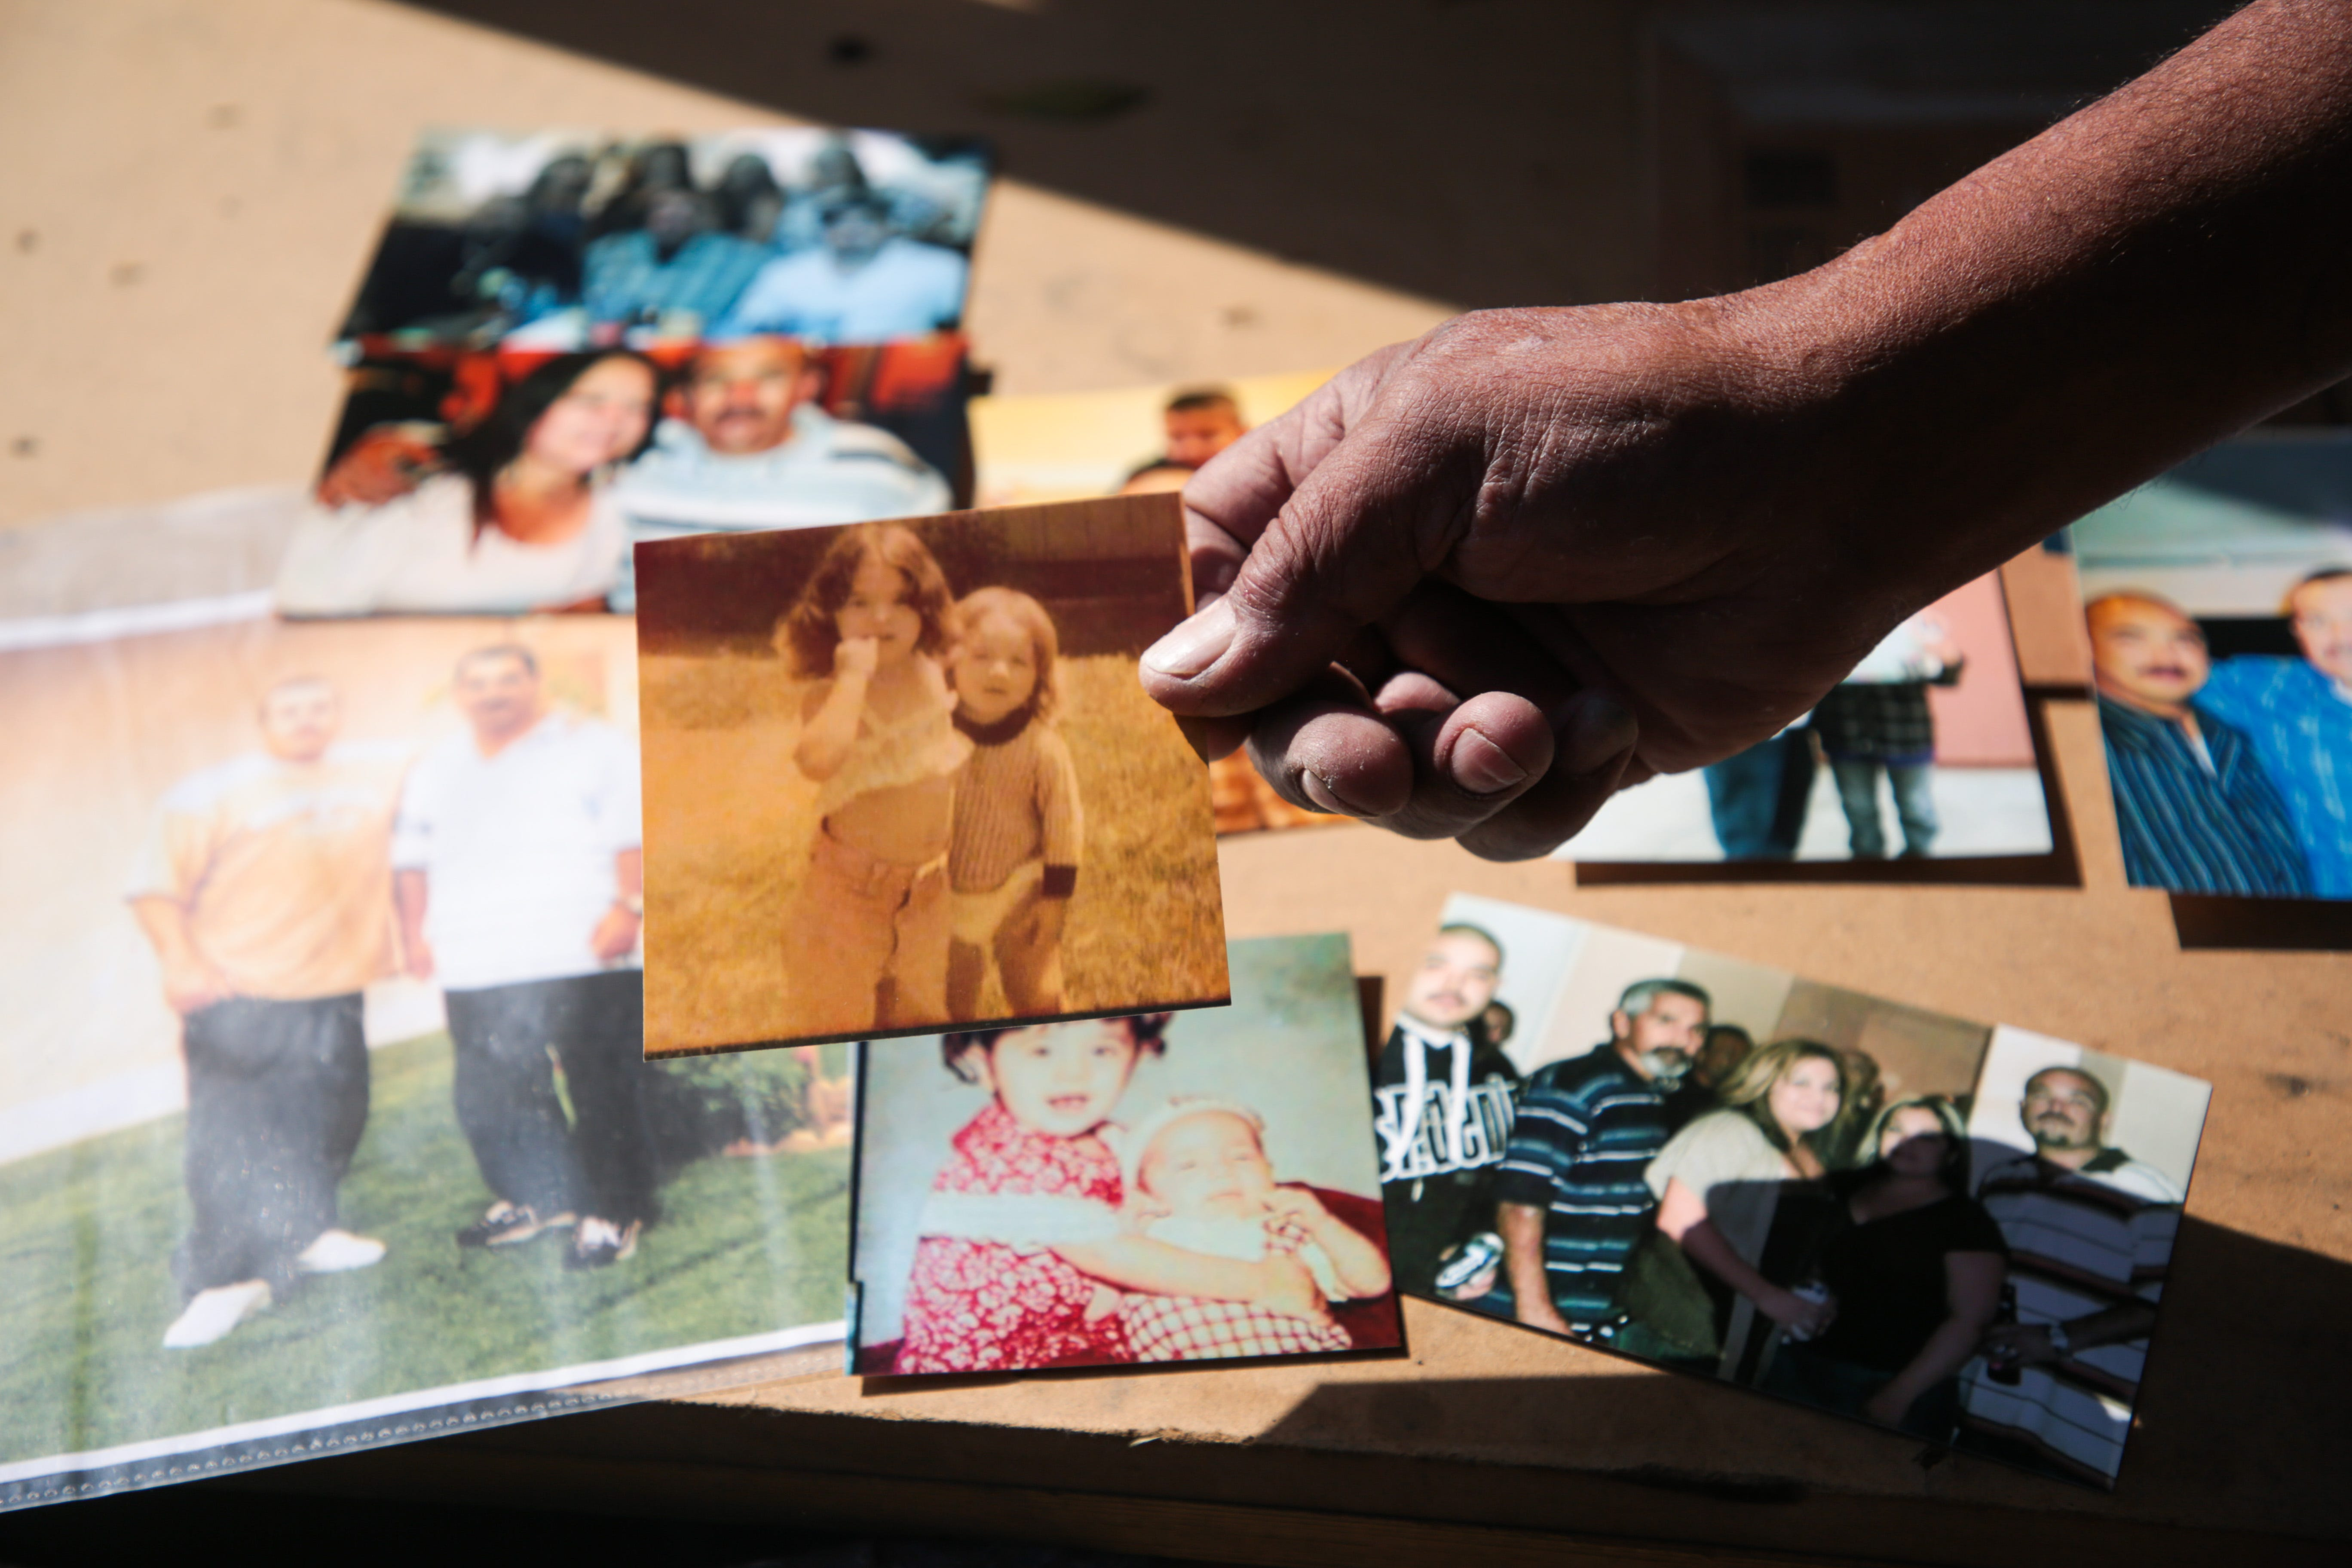 Luis Carlos Morin Sr. goes through photos of his son, Luis Carlos Morin Jr., right, at his home in Coachella on Feb. 25, 2021. Former Riverside County Sheriff's Deputy Oscar Rodriguez is being prosecuted for fatally shooting Luis Morin Jr. in 2014.